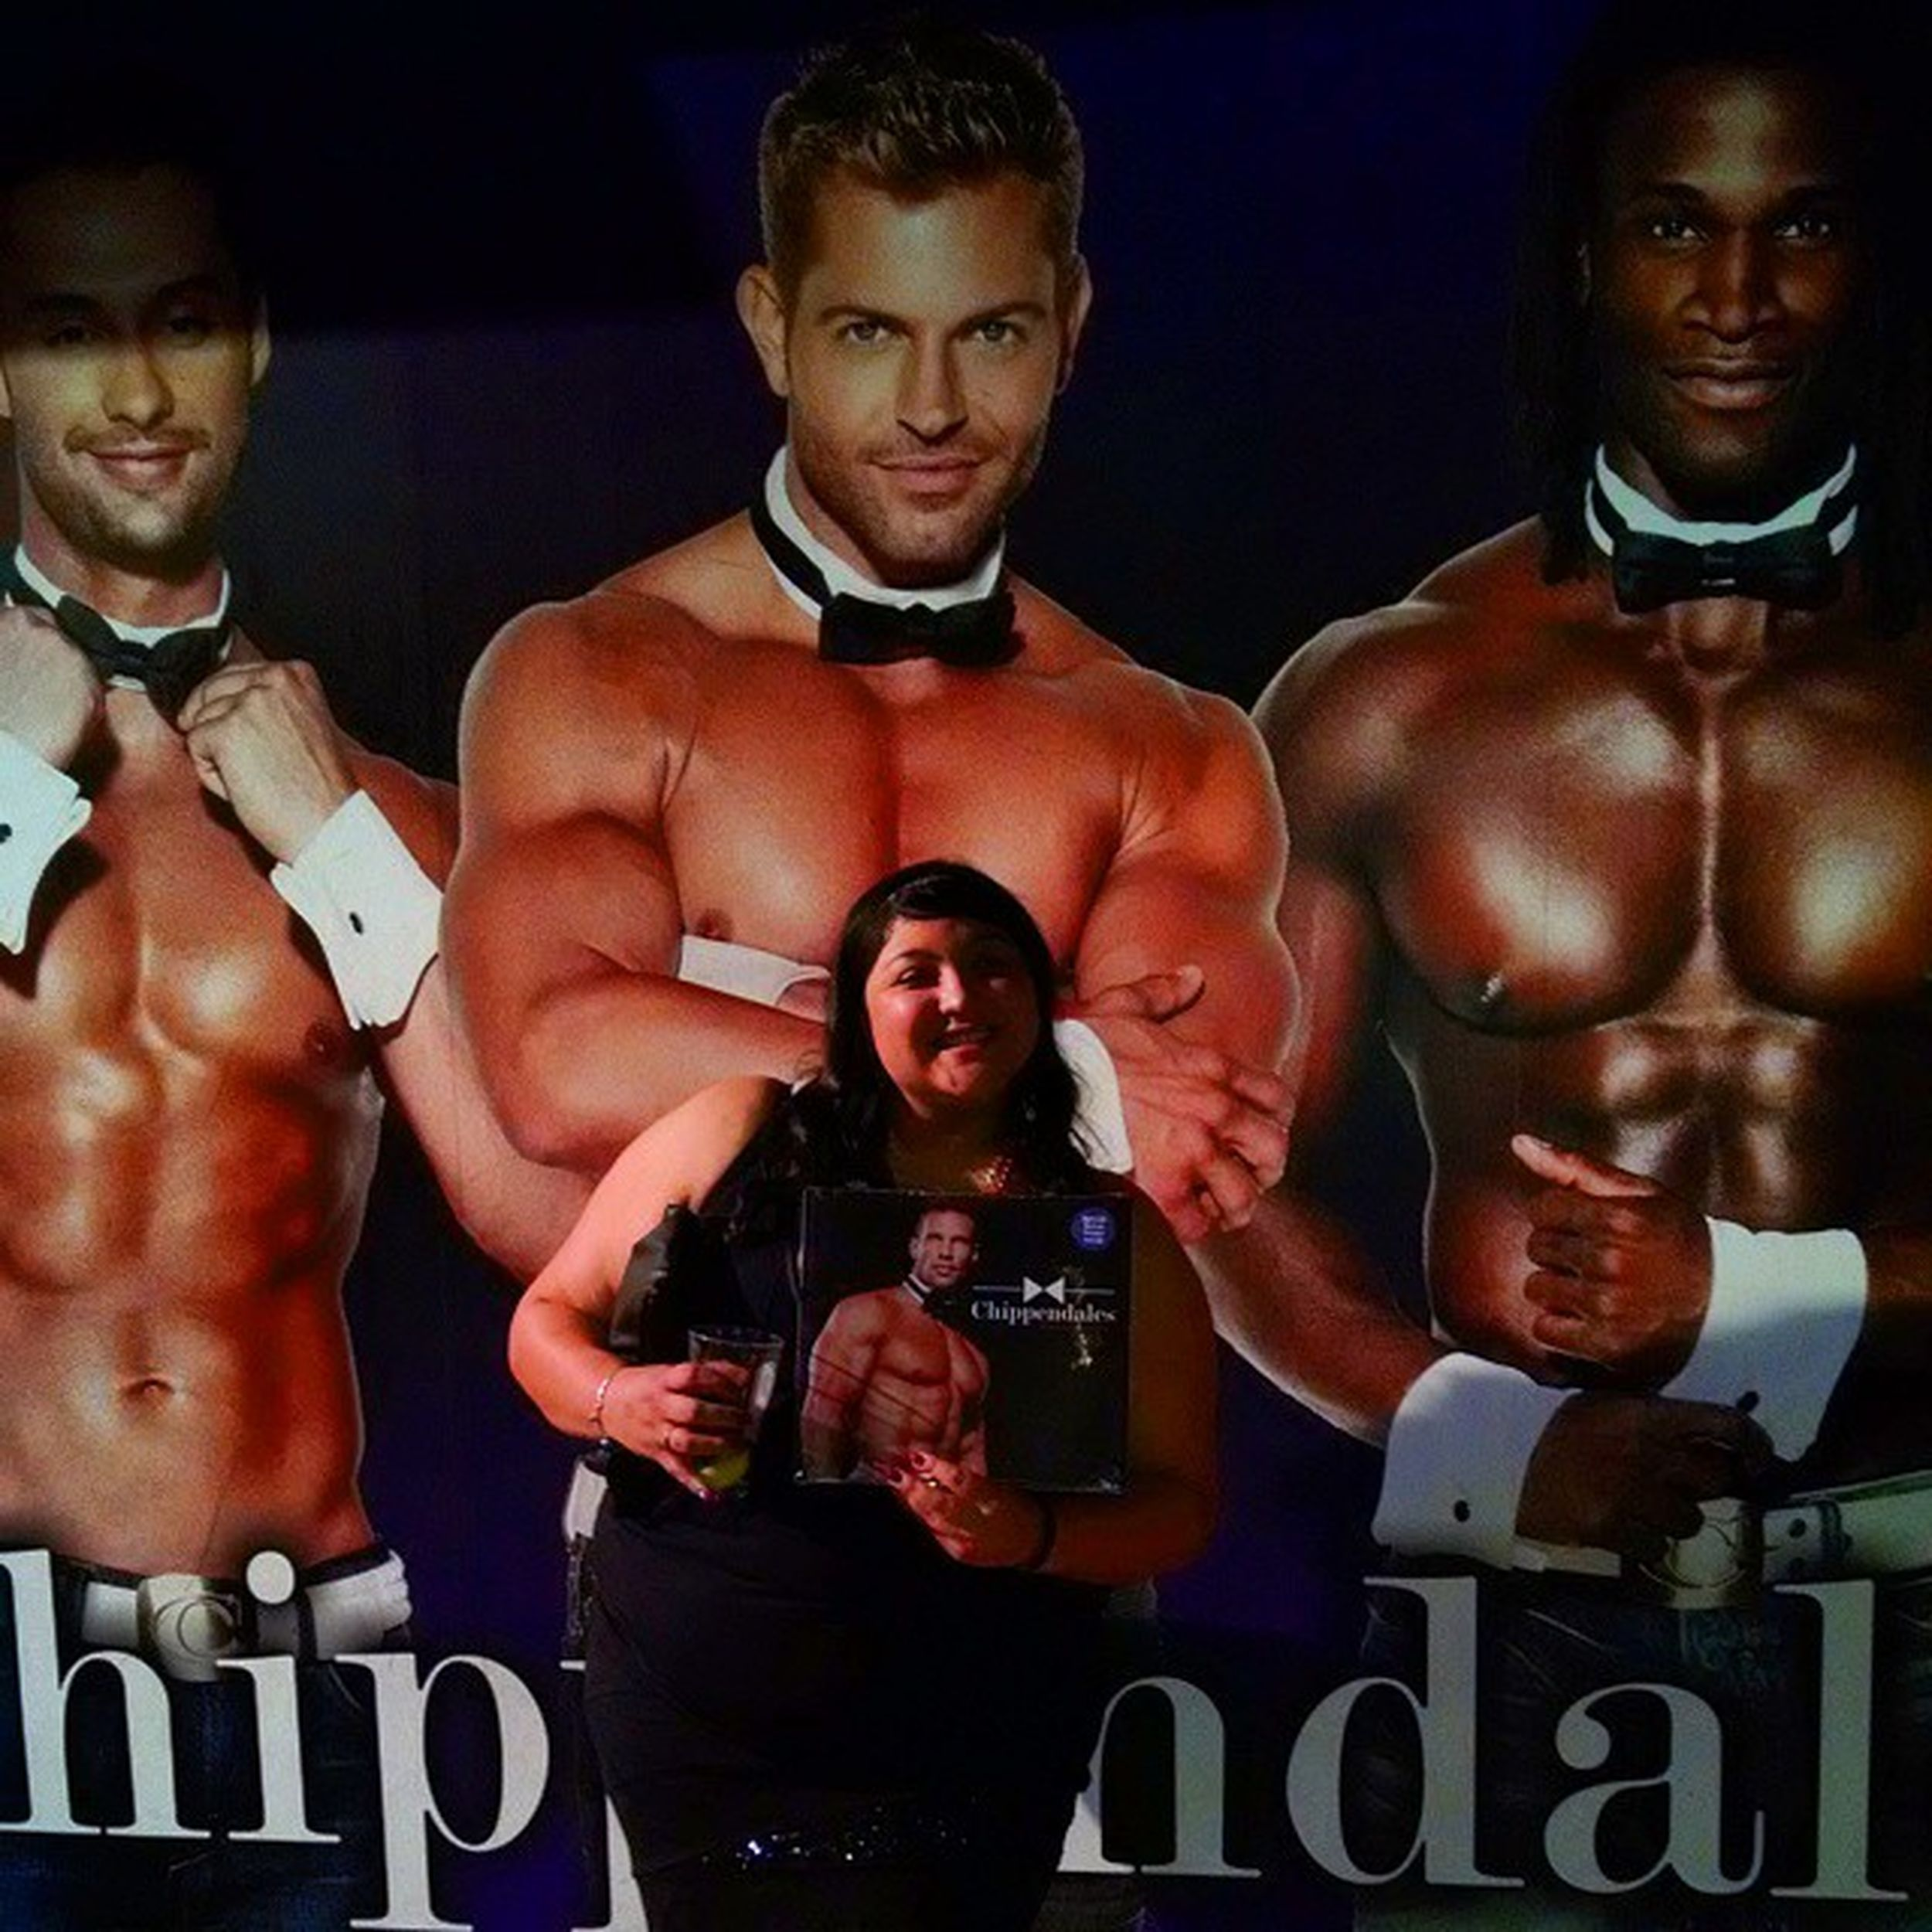 So I will n a calendar and a kiss tonight. Vegas  Bachoretteparty Rio Chippendales hekissedme